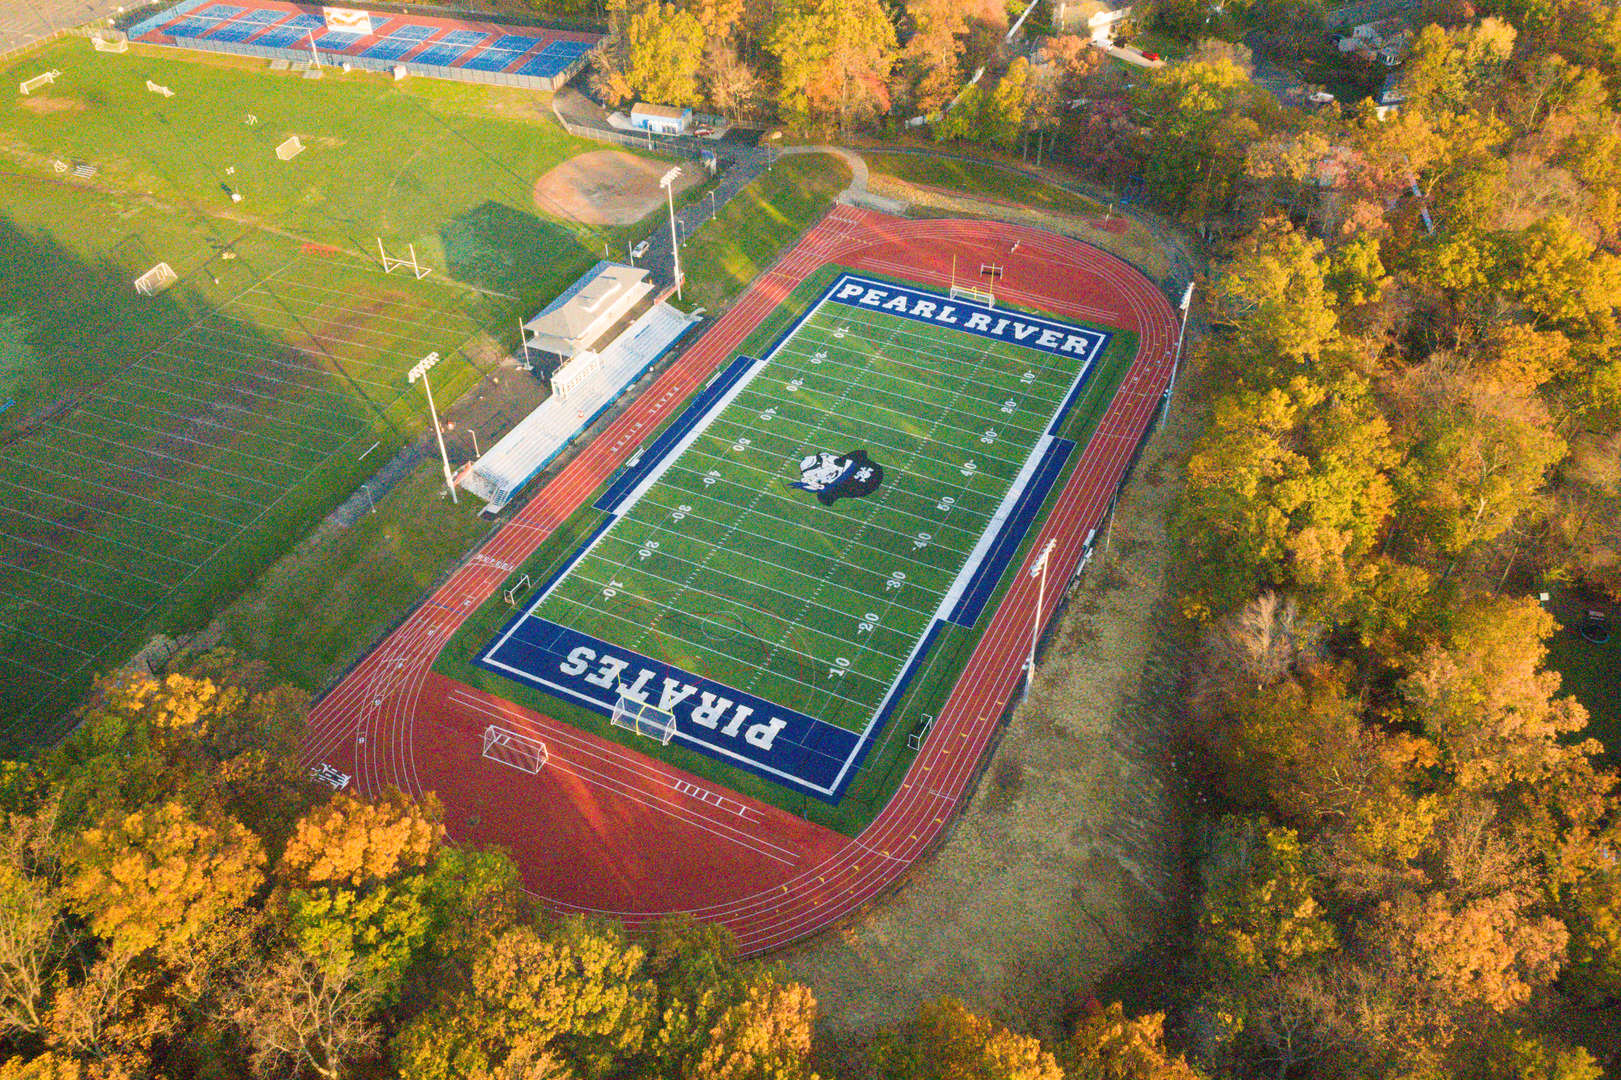 Field picture from above